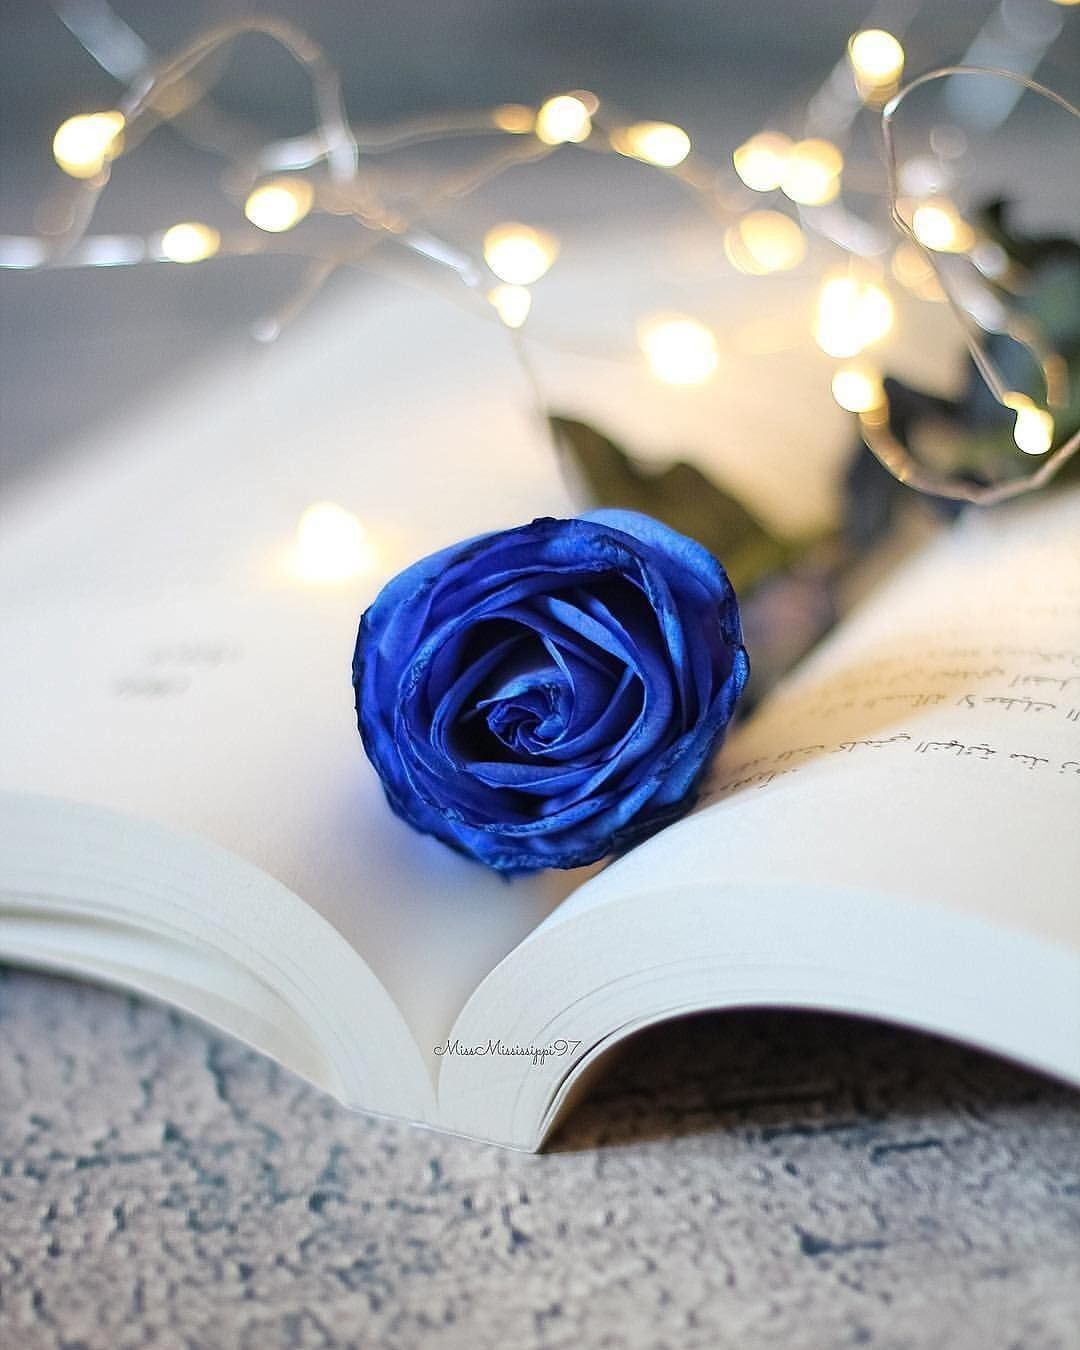 Raindrops And Roses Blue Roses Wallpaper Blue Rose Tattoos Raindrops And Roses